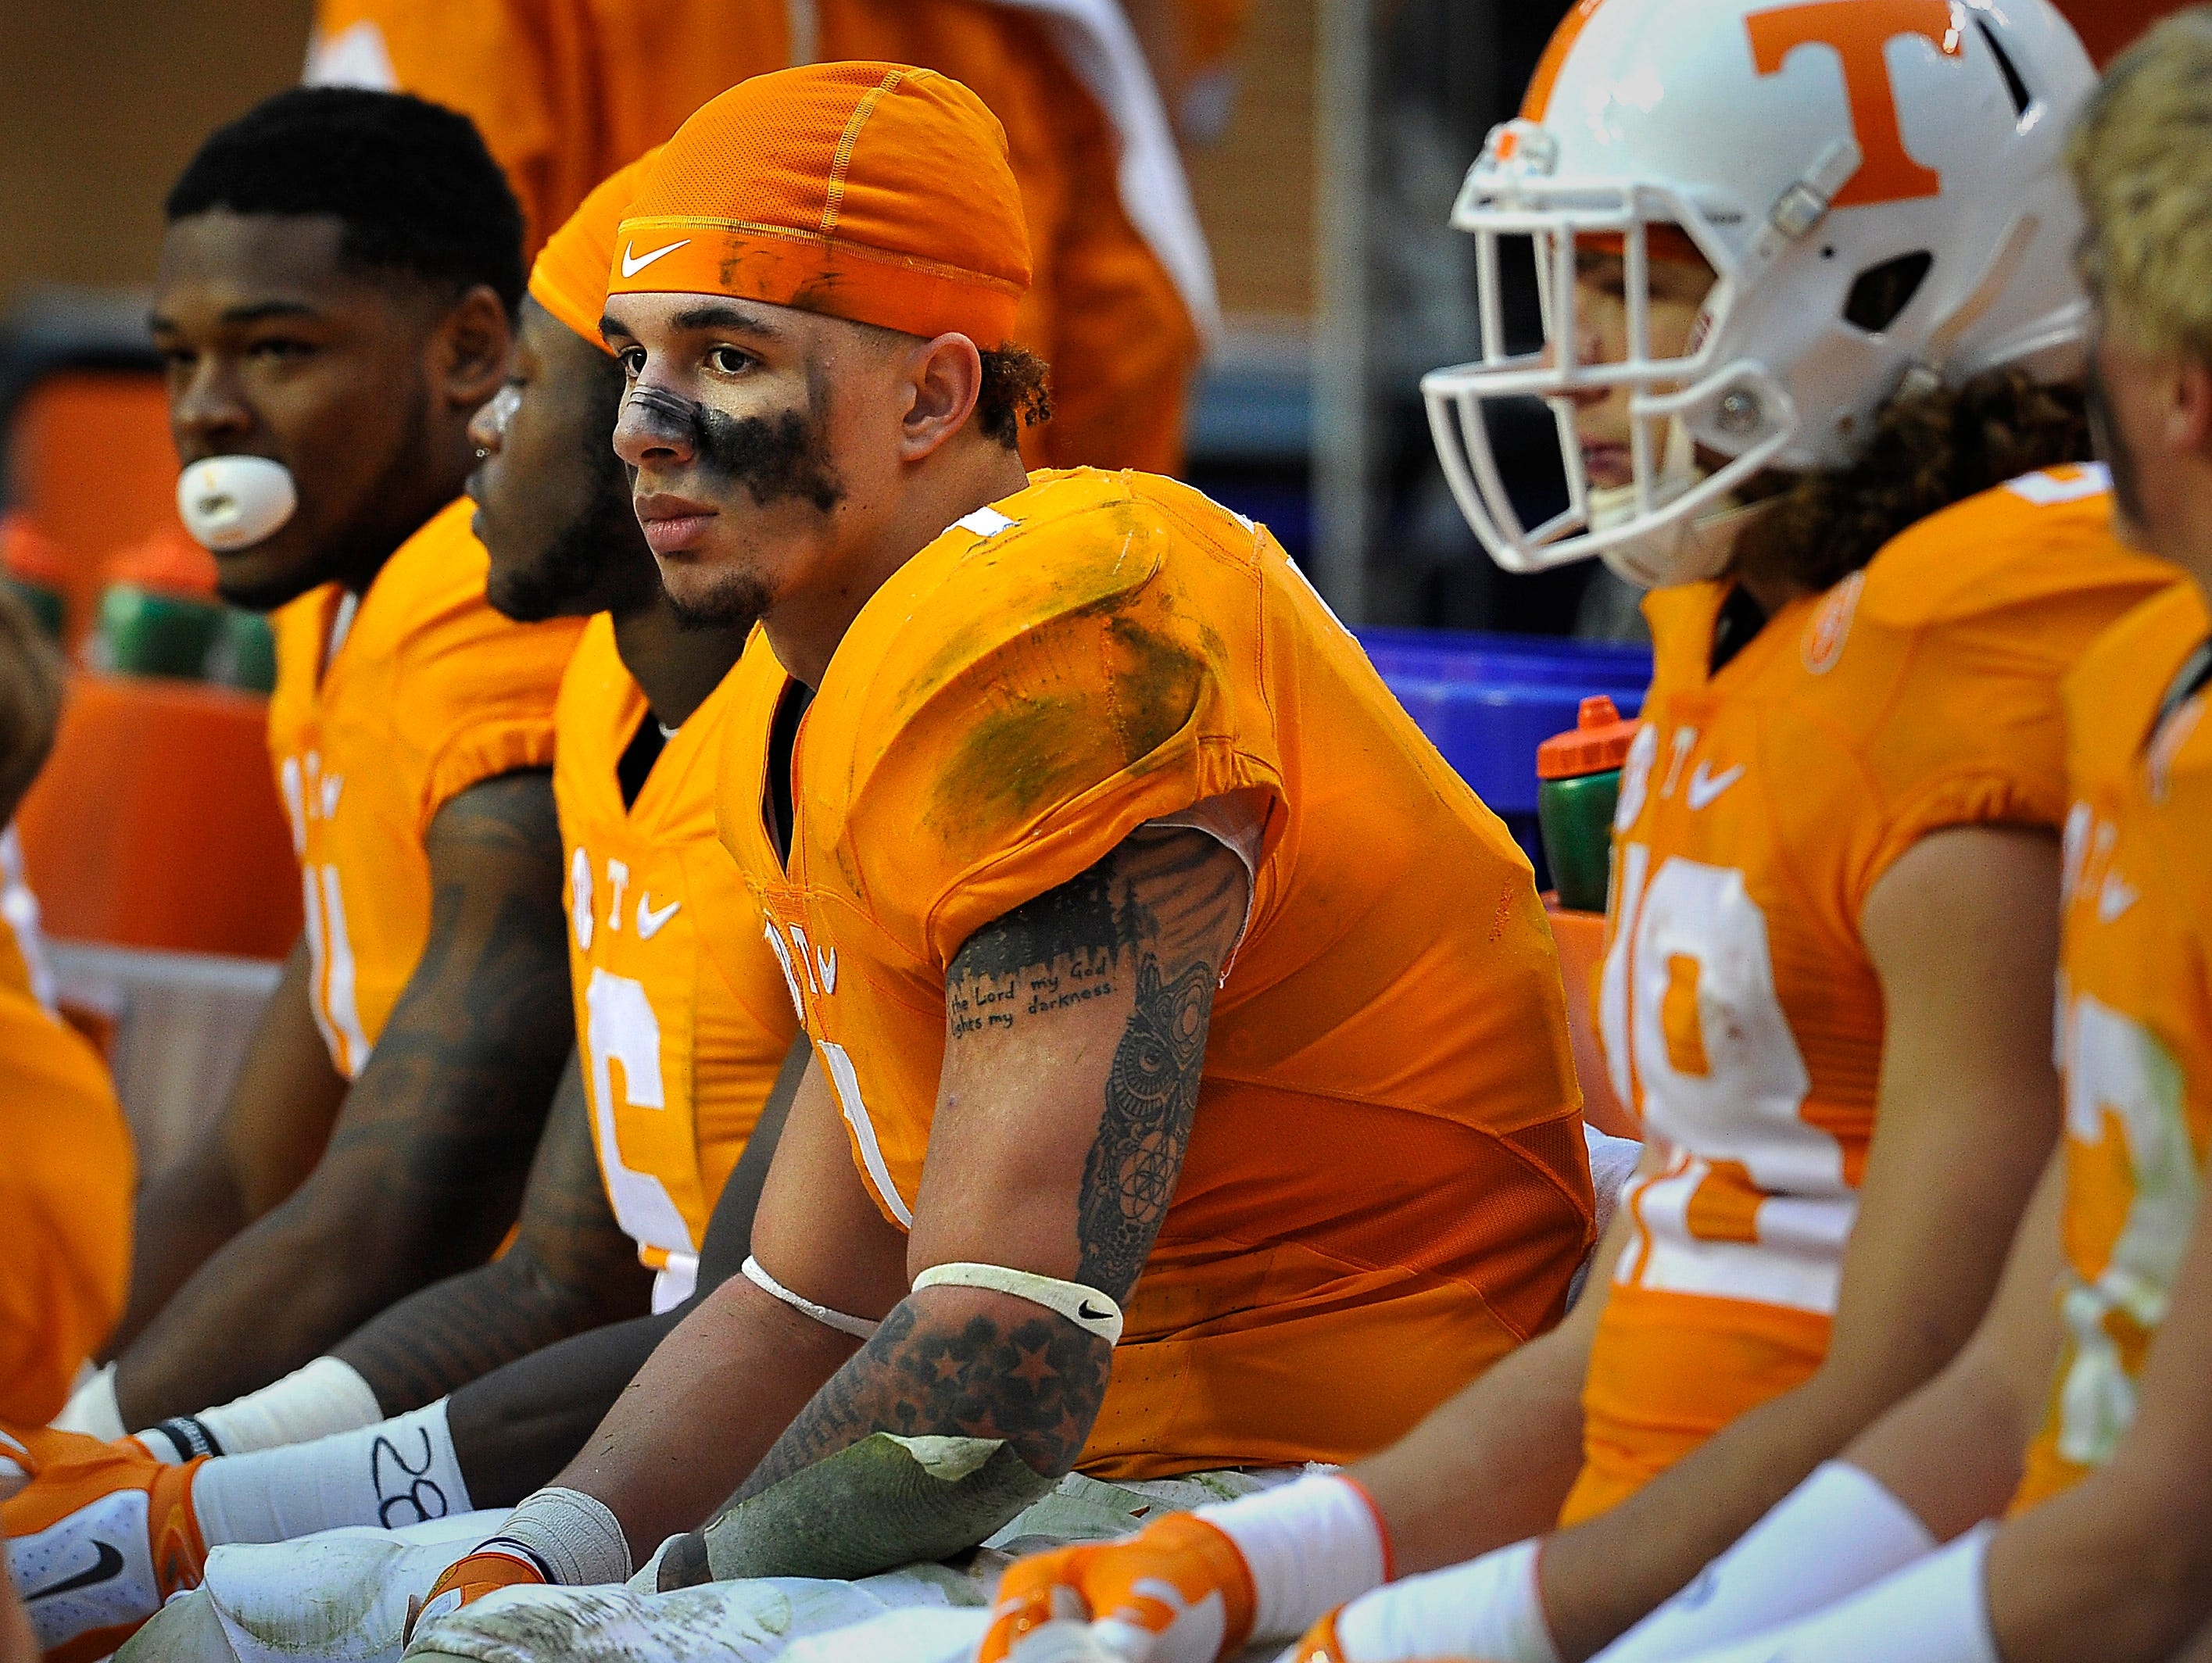 Tennessee running back Jalen Hurd (1) gets a break on the sidelines during the South Carolina game.